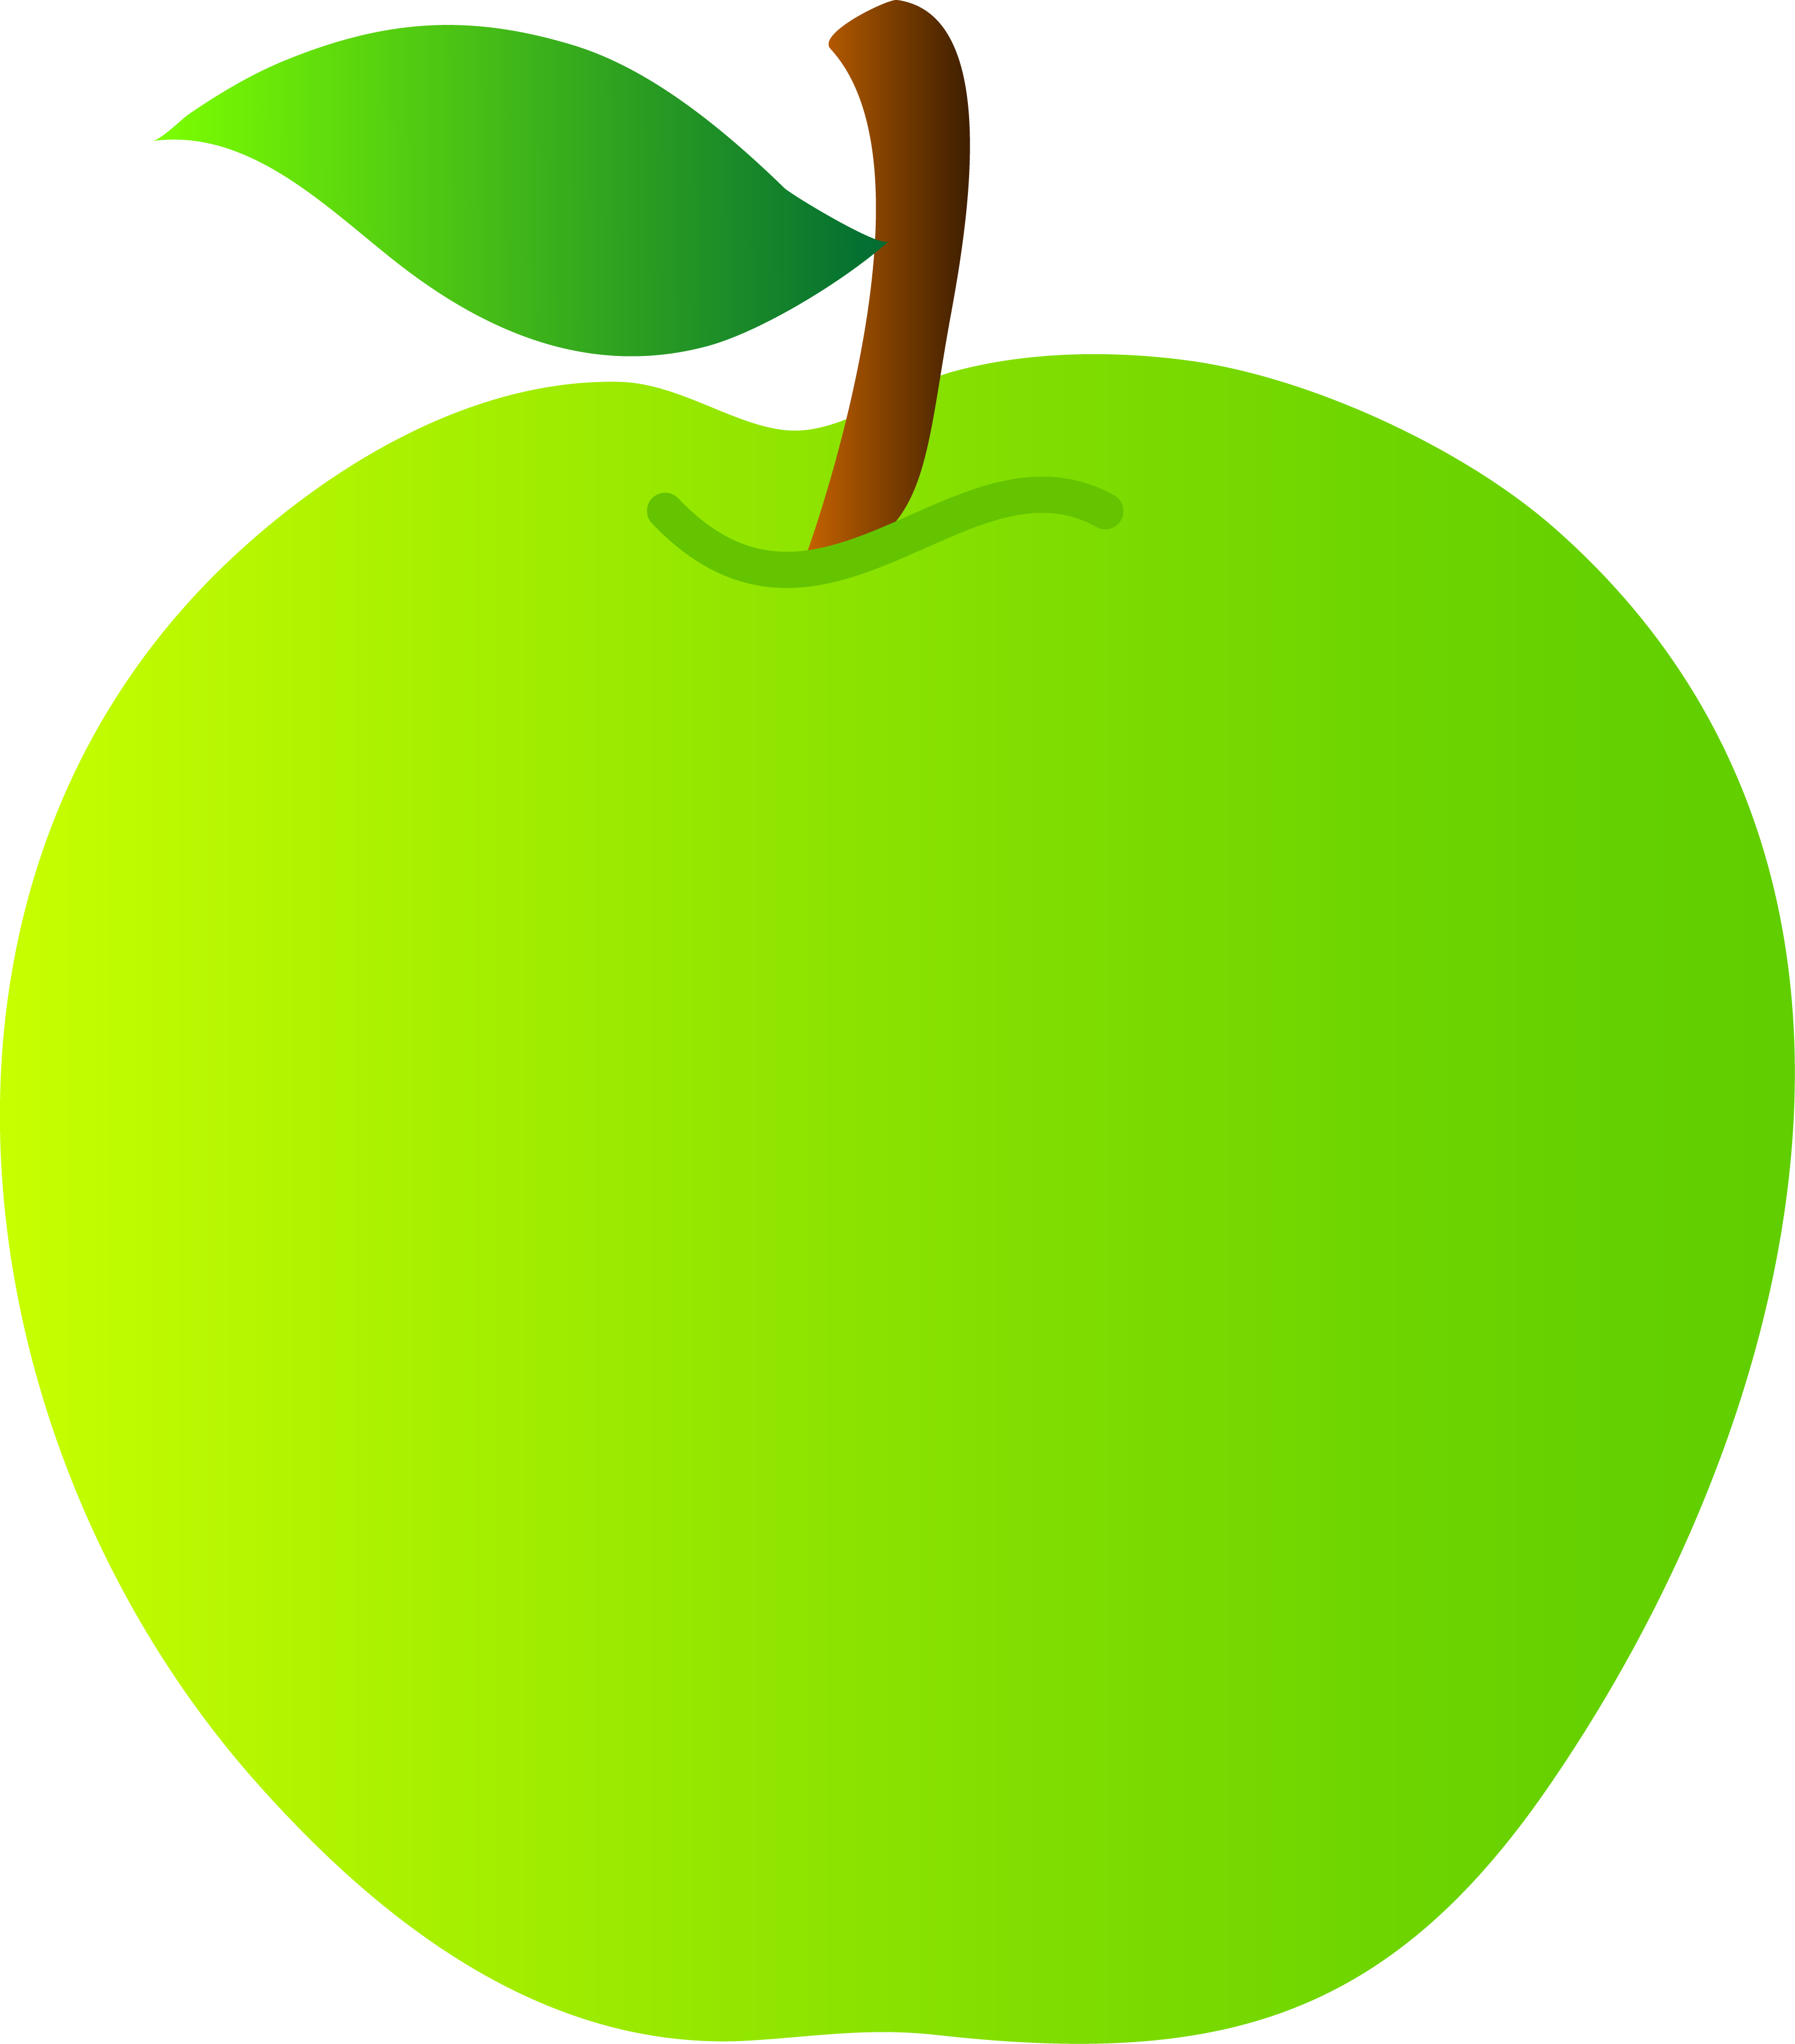 Green clipart png. Apple